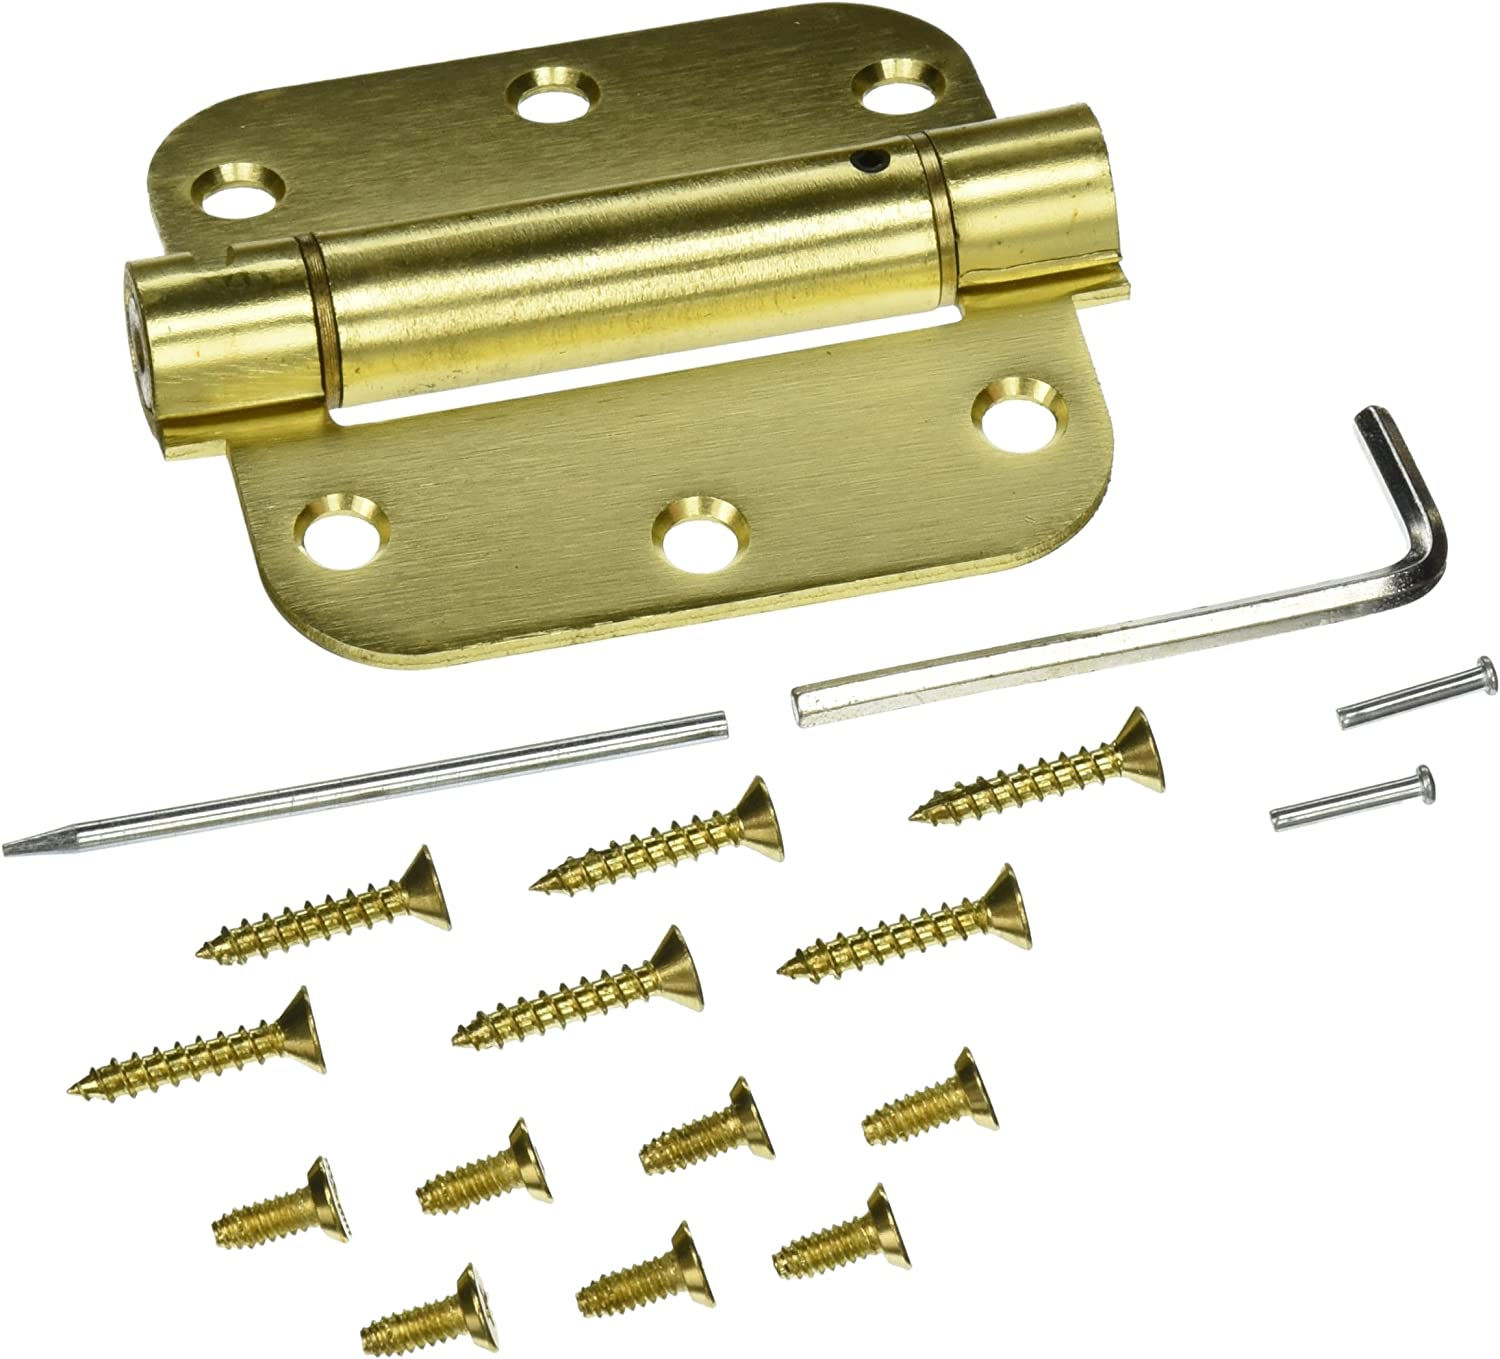 Deltana DSH35R54 Single Action Steel 3 1/2-Inch x 3 1/2-Inch x 5/8-Inch Spring Hinge